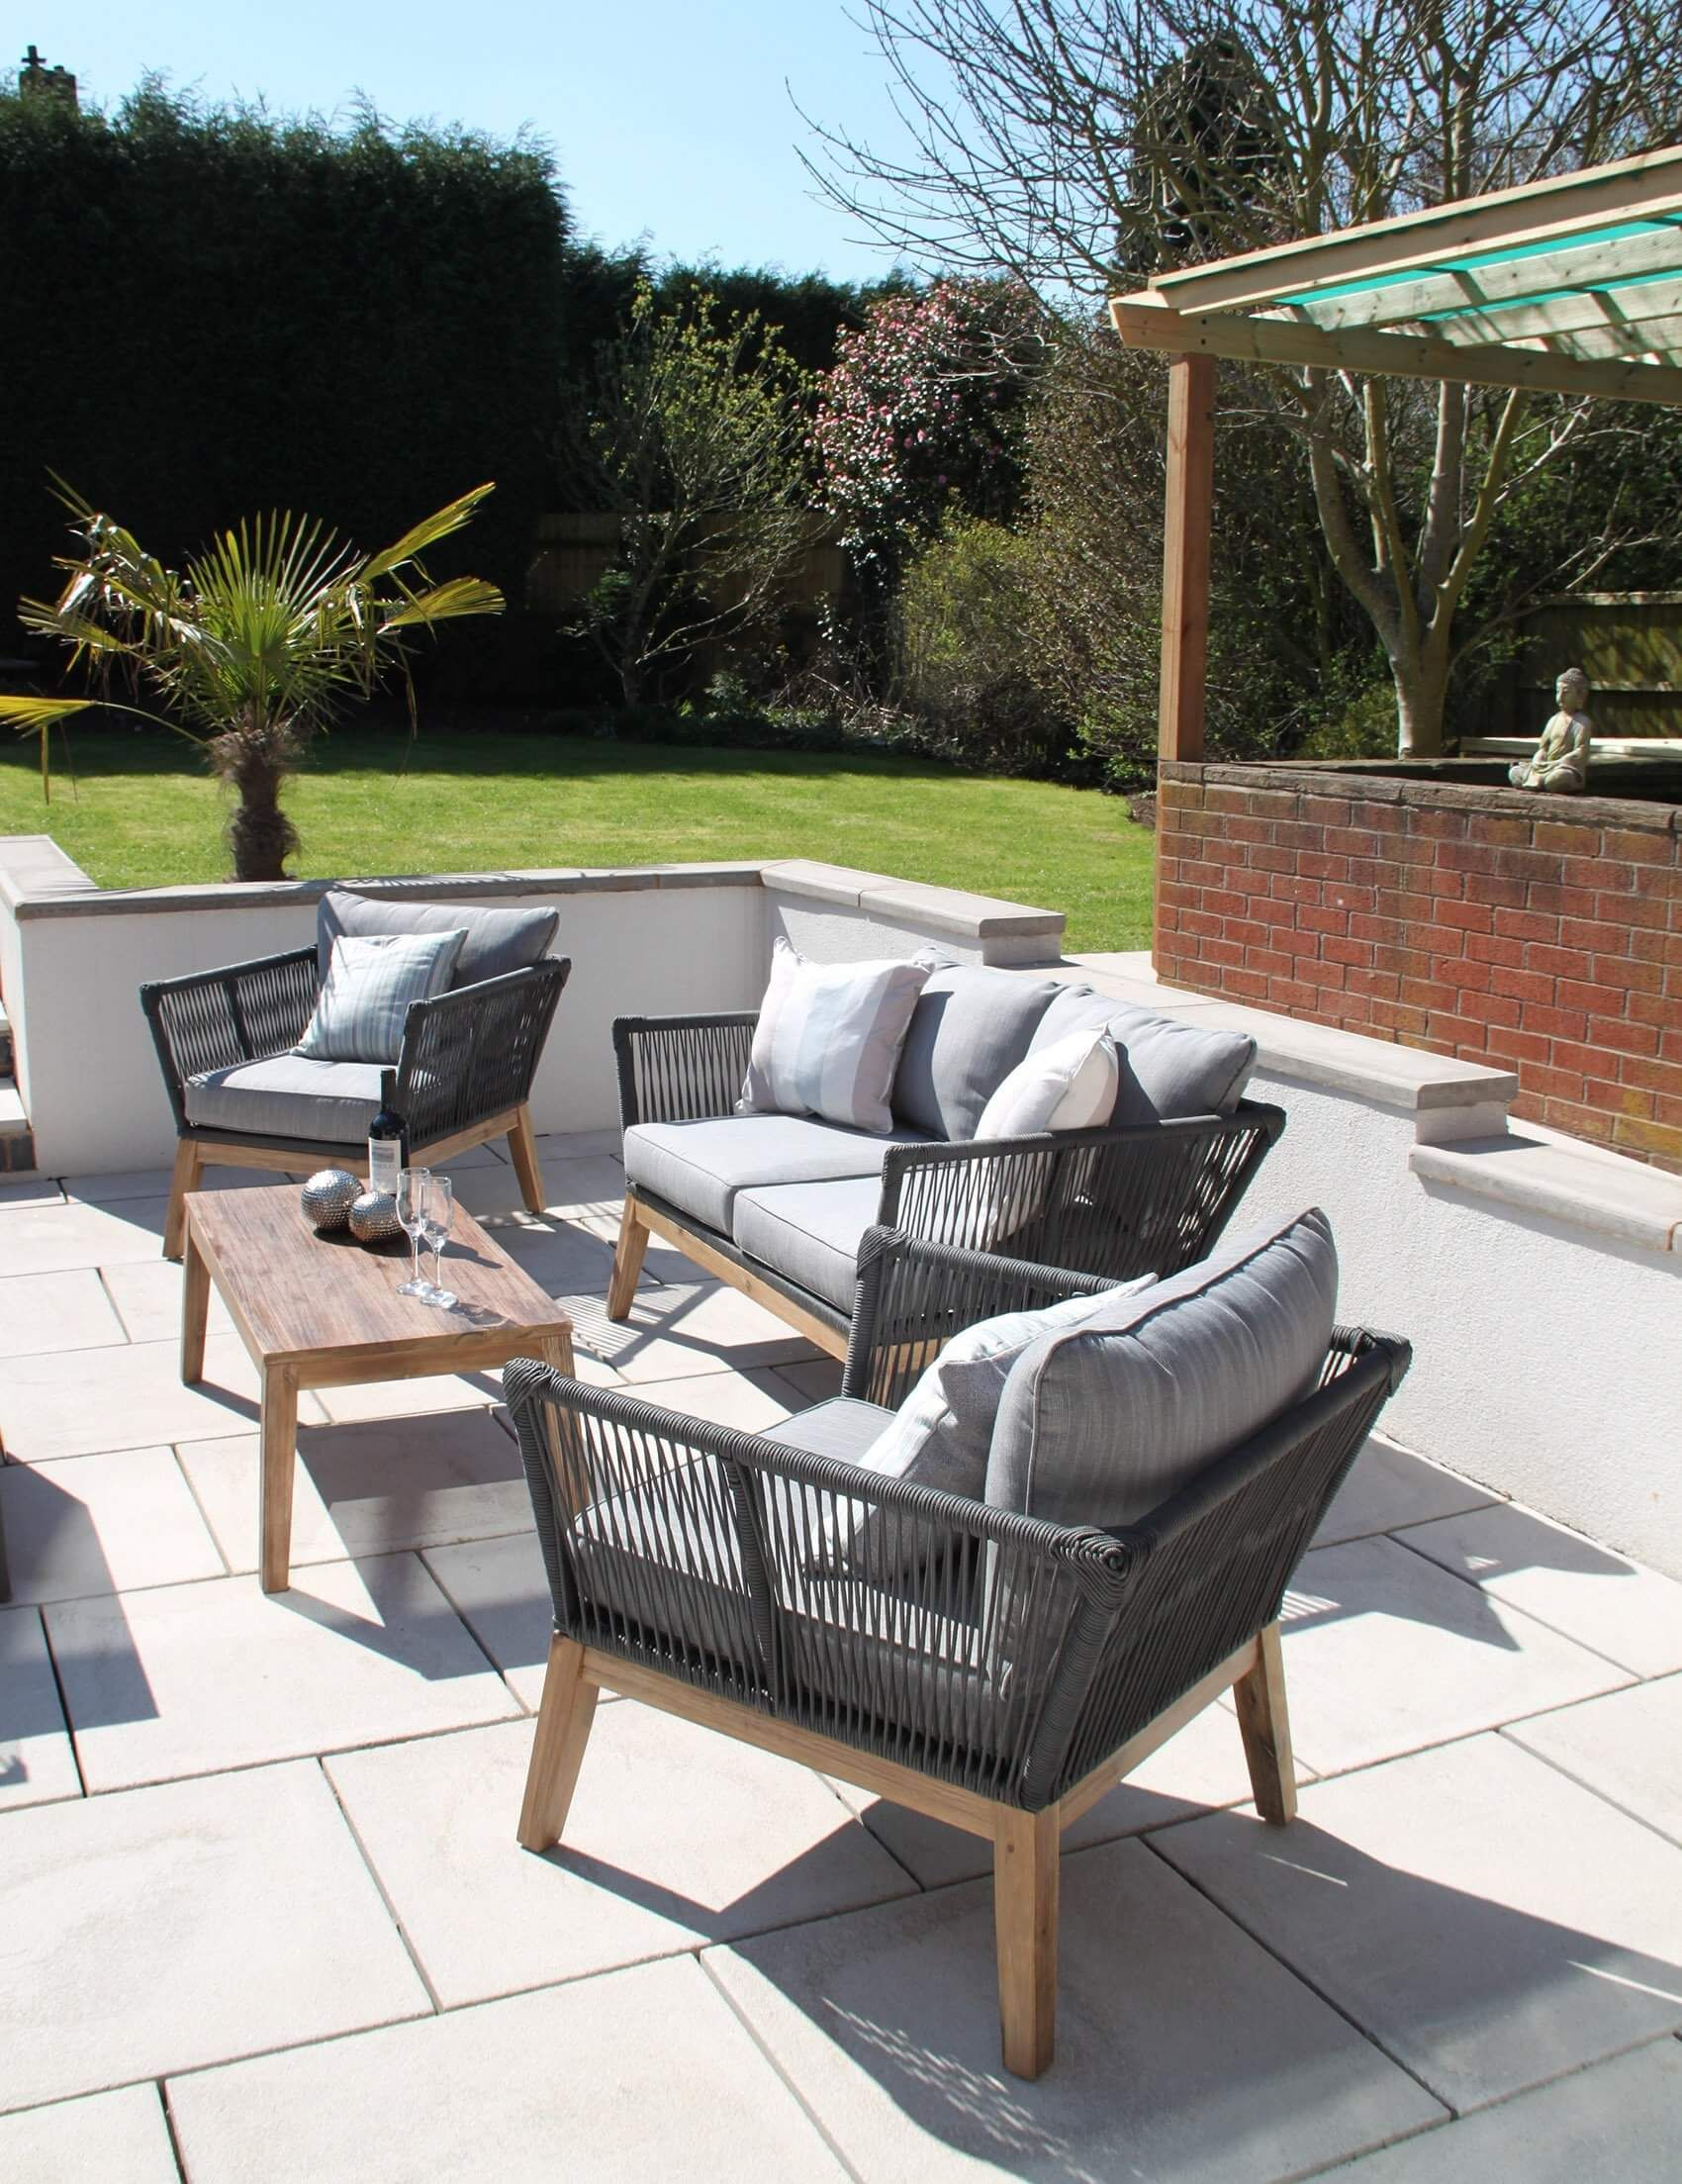 Rope Garden Furniture (With images) Garden sofa set